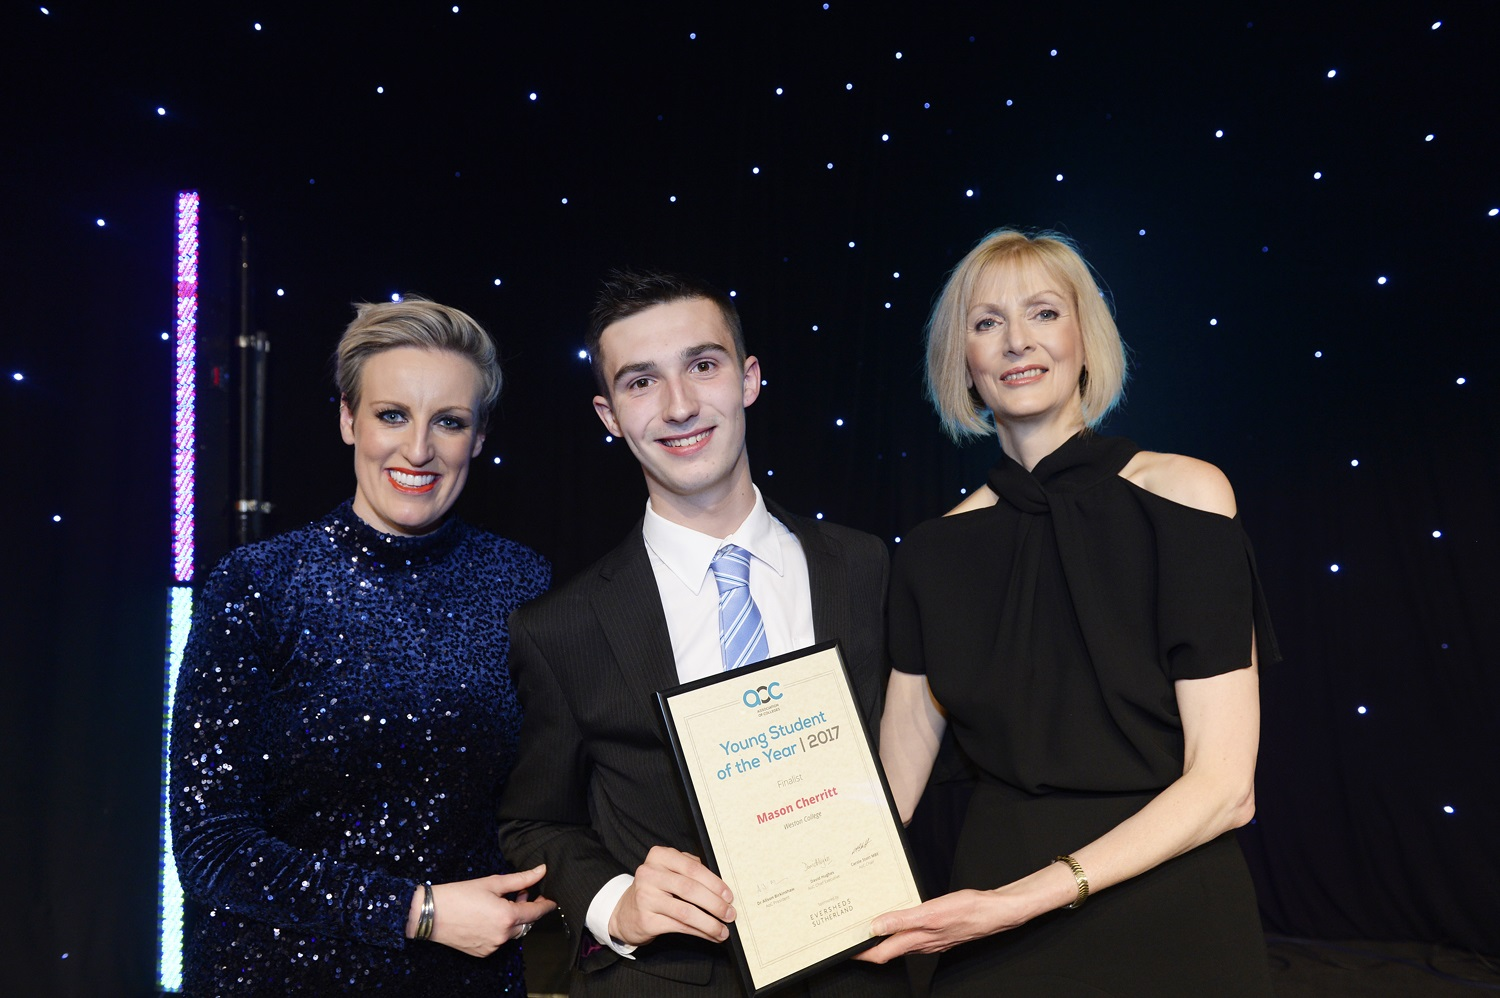 Weston College, Student of the Year finalist Mason Cherritt